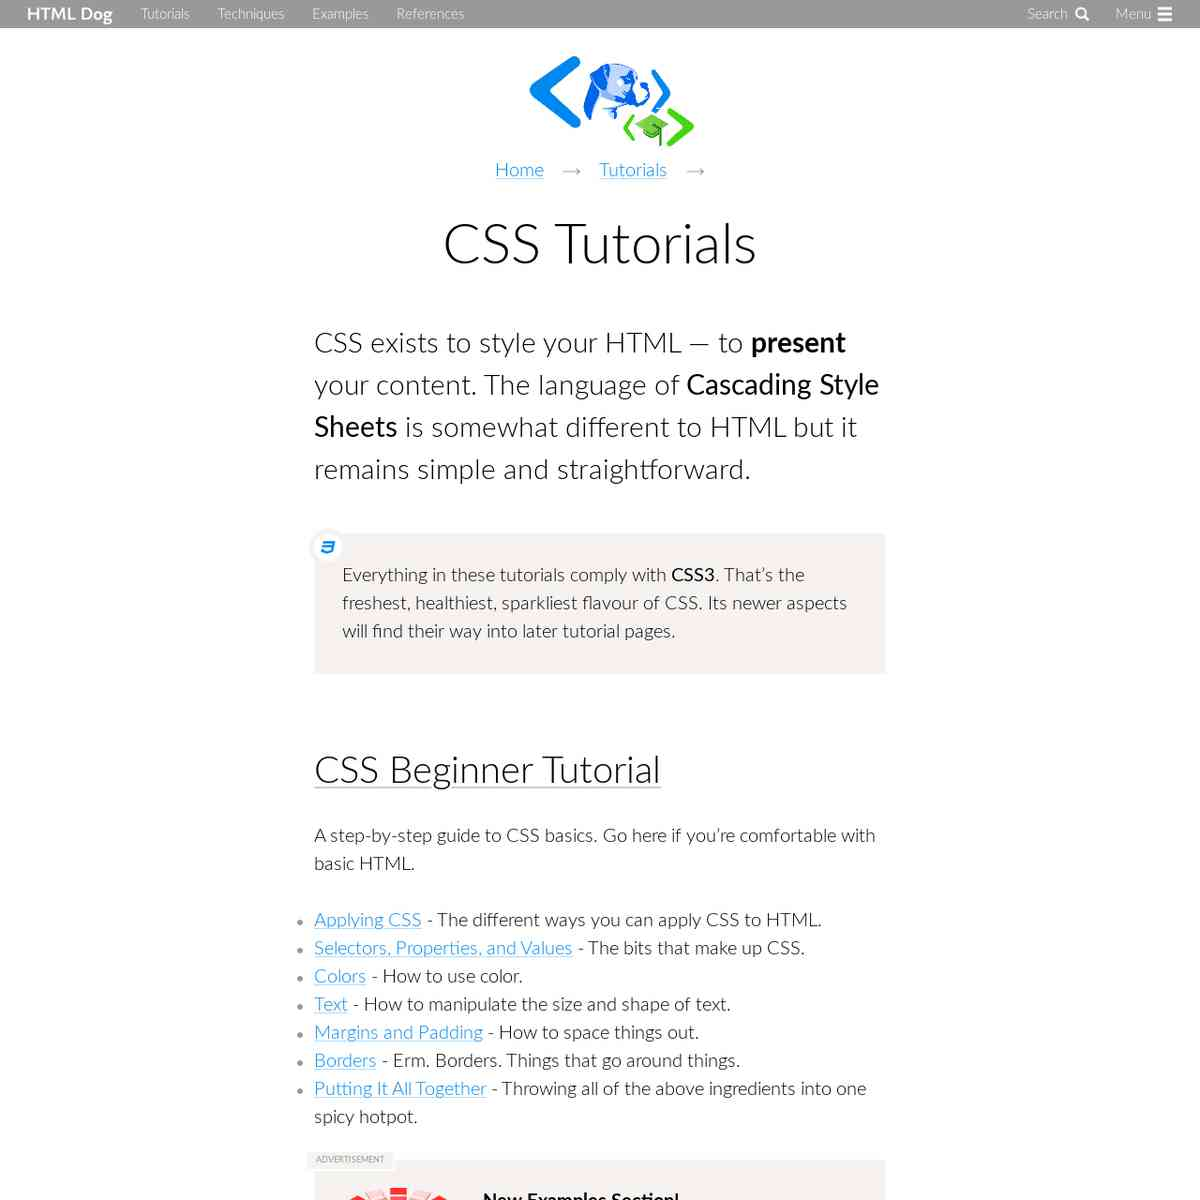 CSS Tutorials | HTML Dog